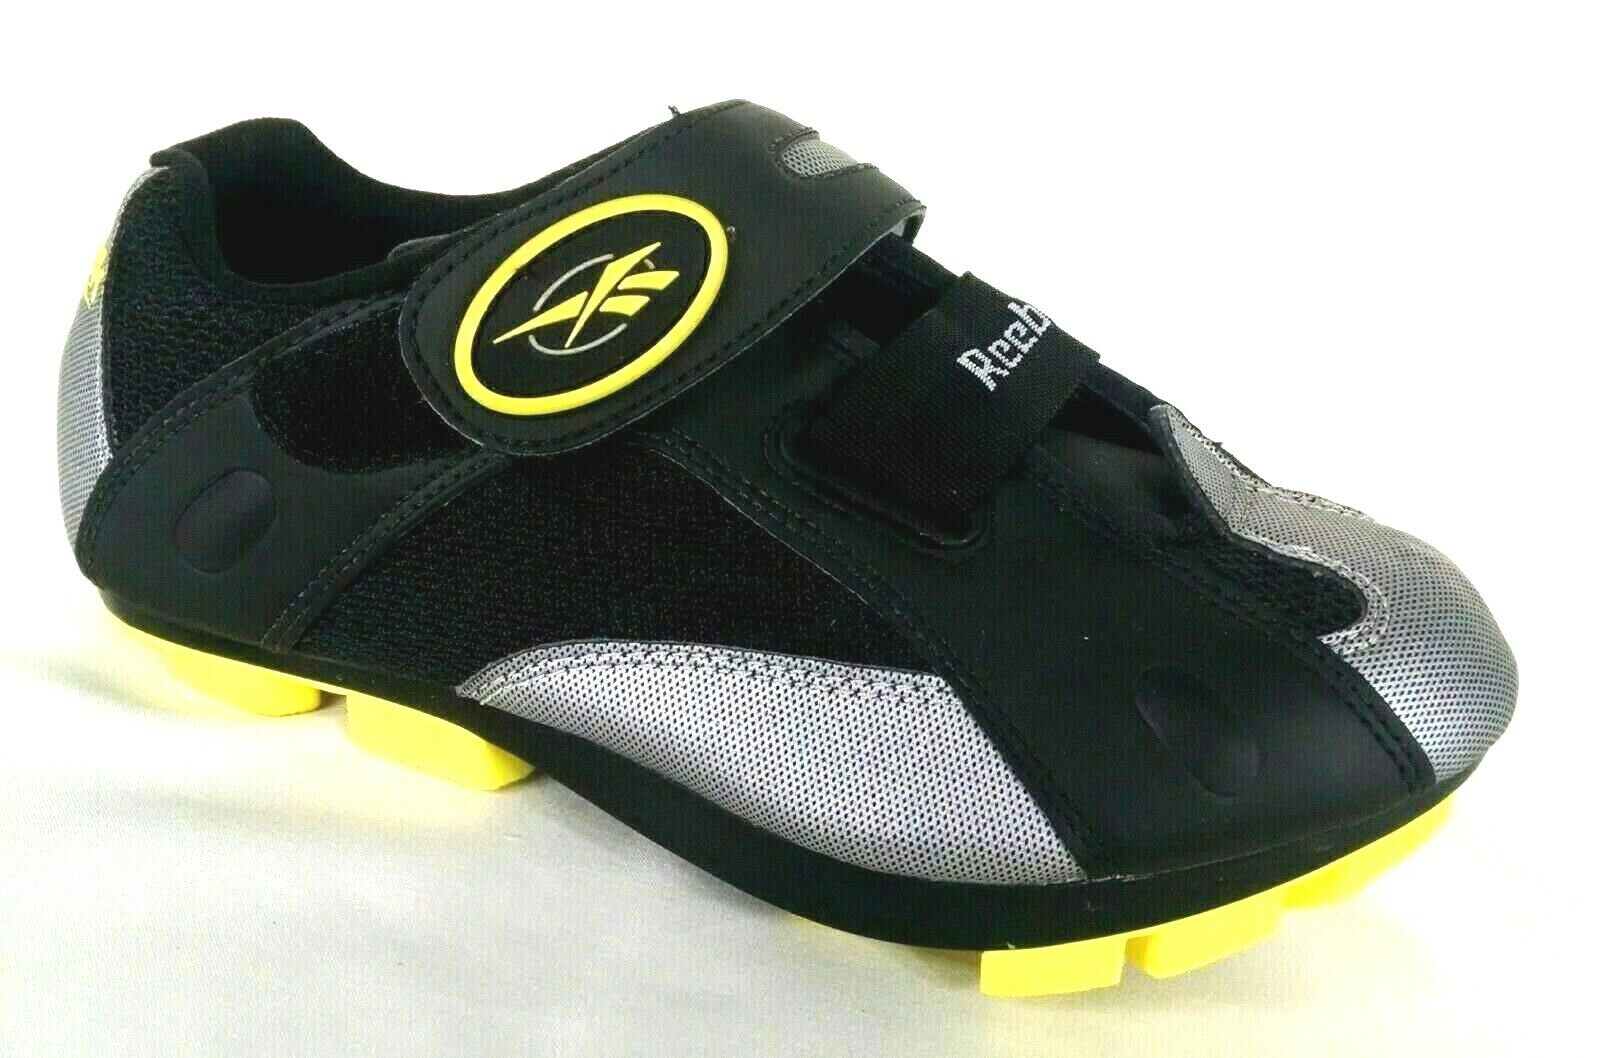 Fruta vegetales Funcionar Camino  Reebok The Rev Cycling Shoes Versa Training Never Used Orig Box Women Size  5.5 for sale online